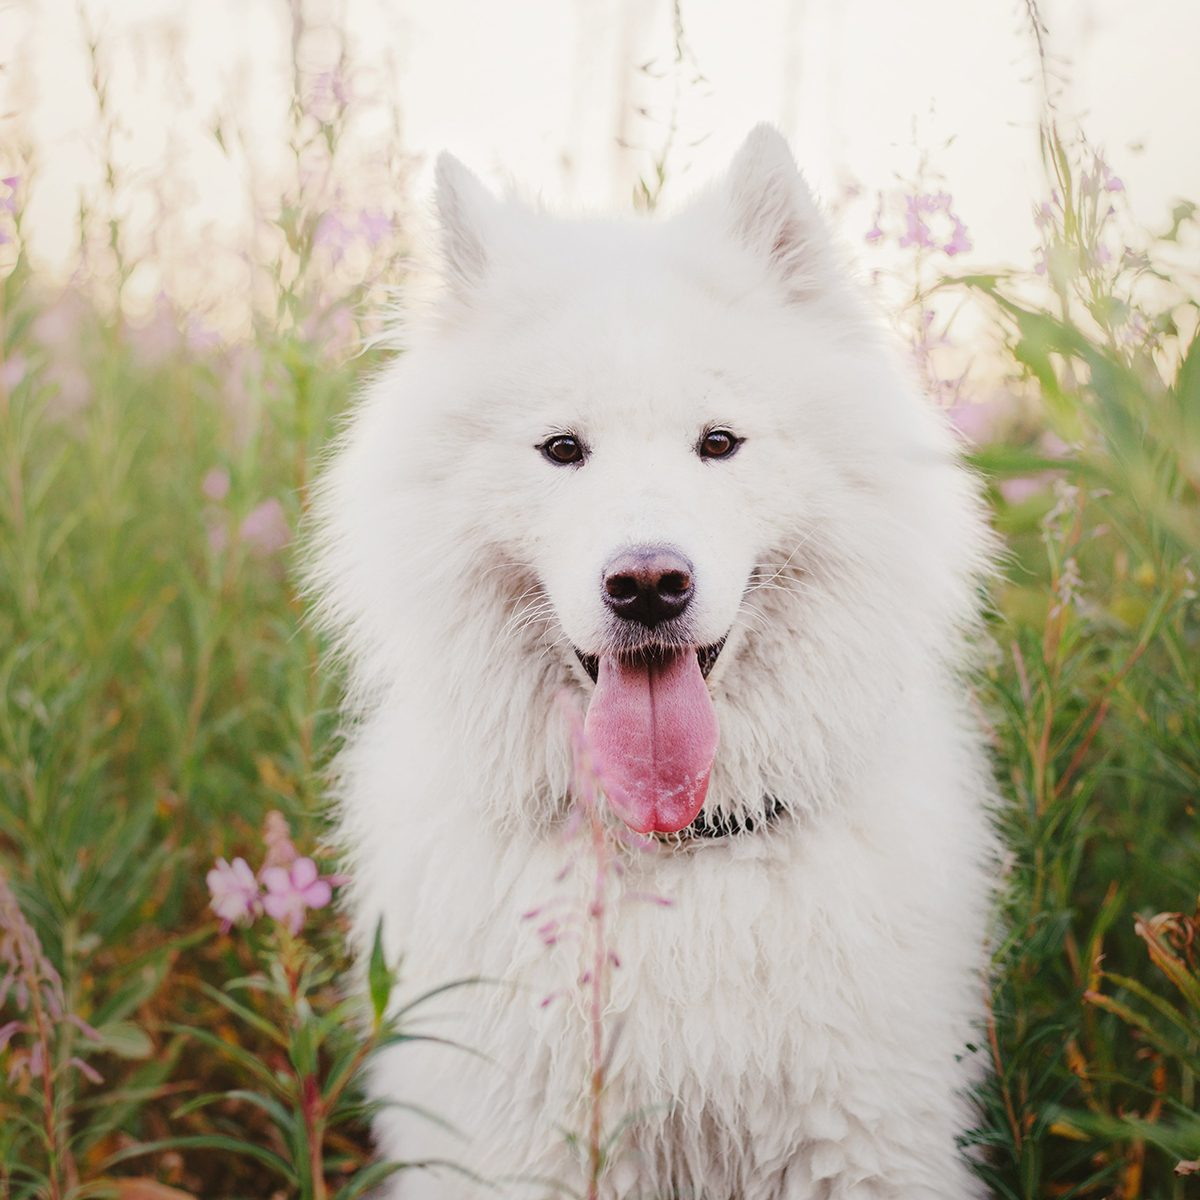 Fluffy white dog in the tall grass